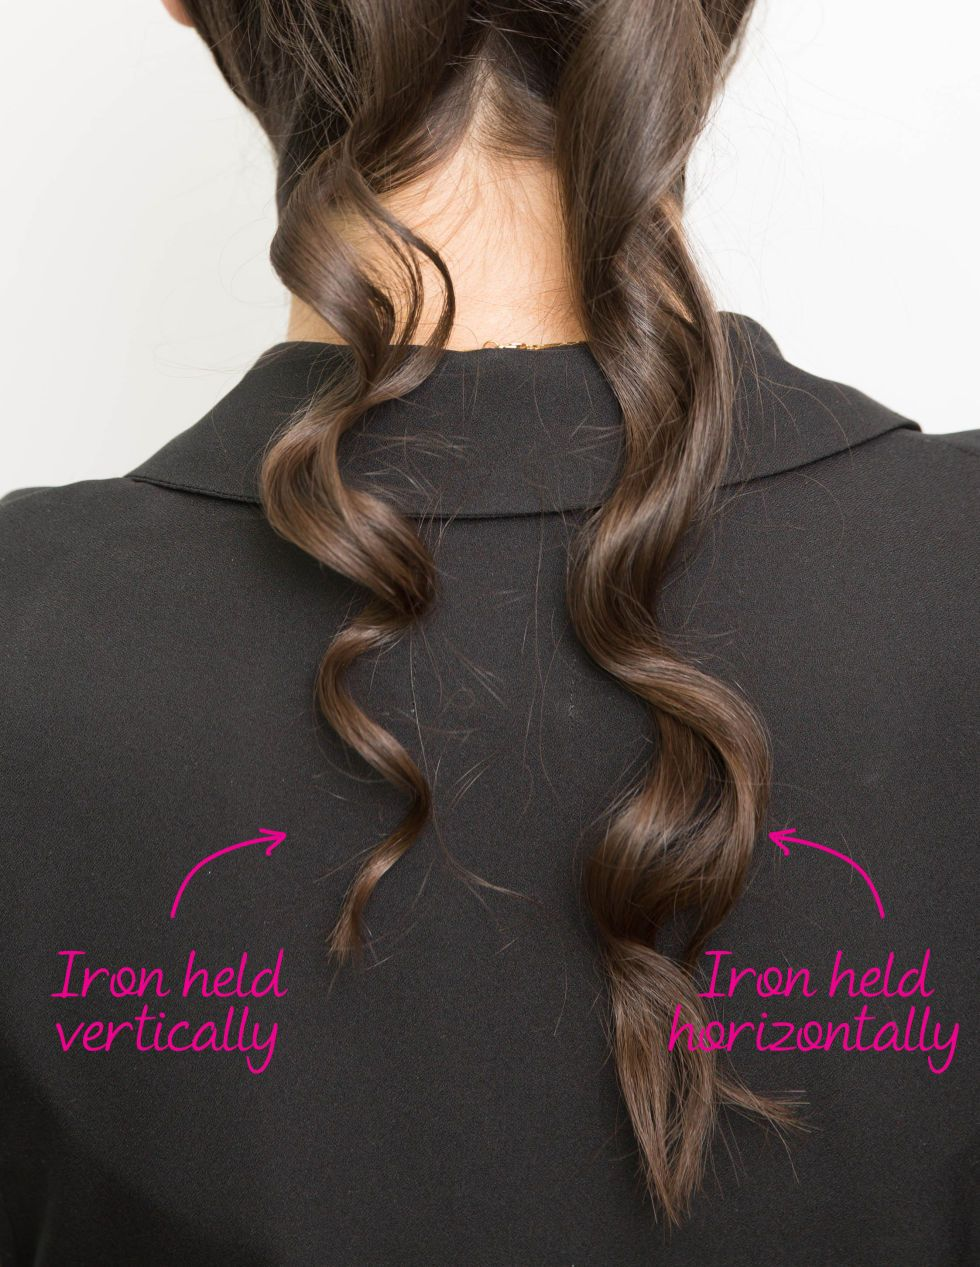 22 Makeup And Hair Tips That Beauty Experts Swear By Hair Styles Long Hair Styles Hair Hacks